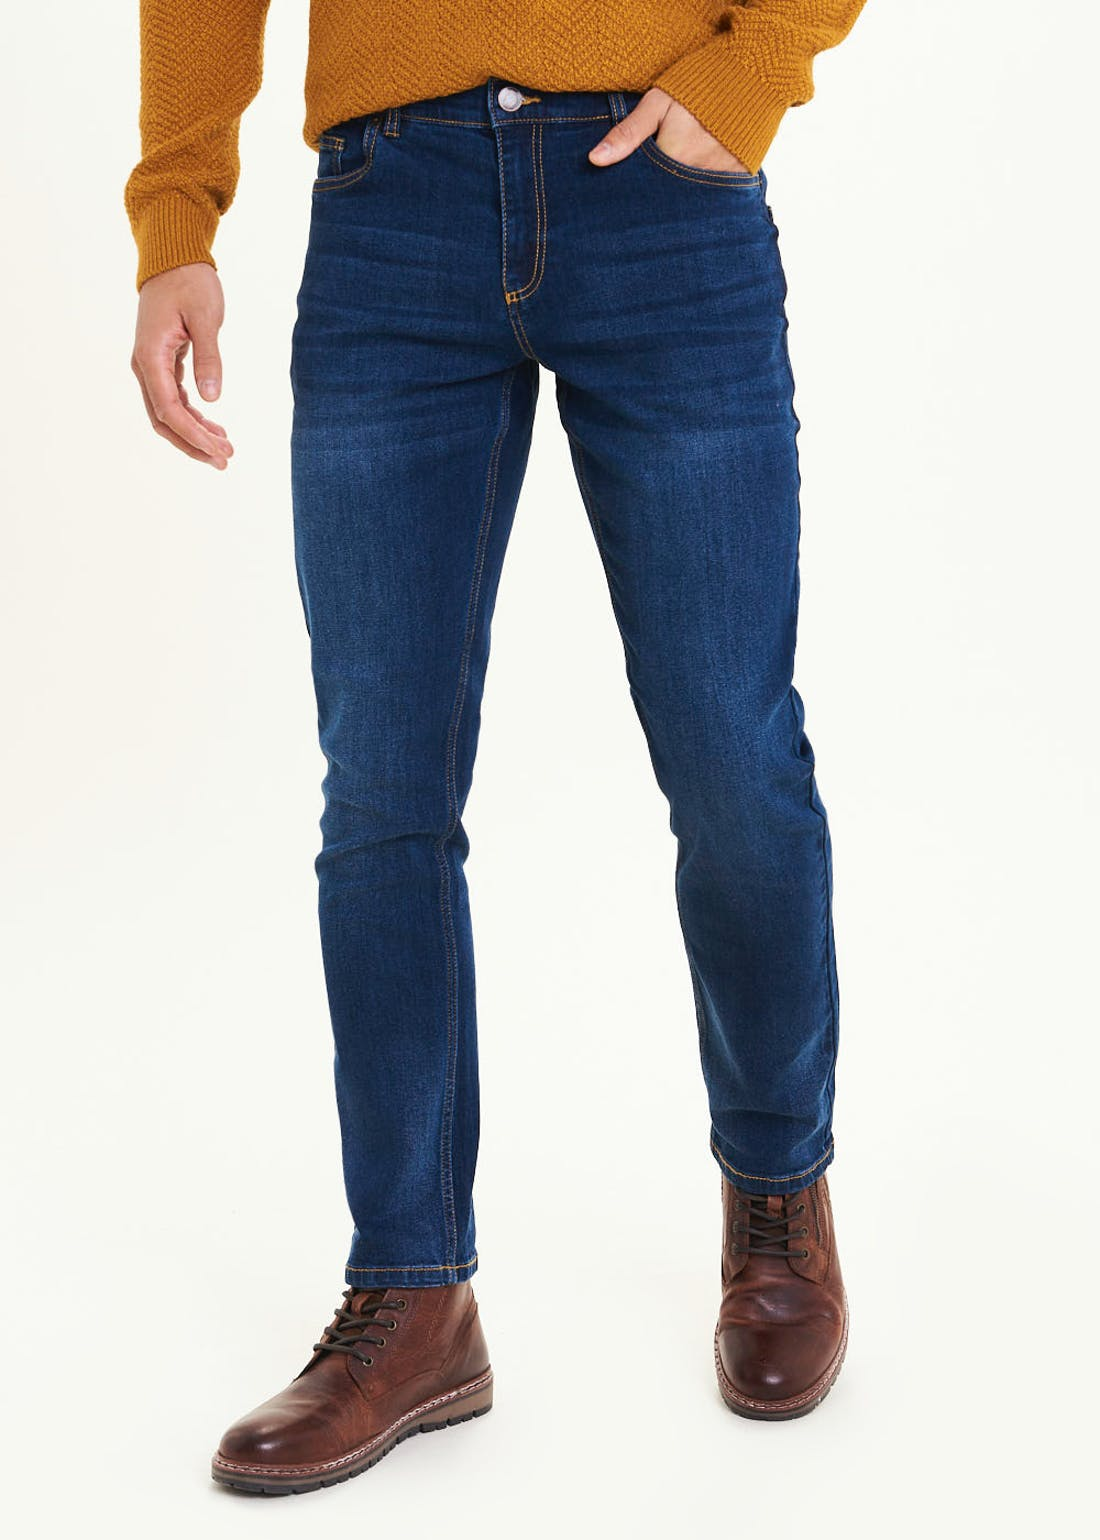 Farah Stretch Darkwash Jeans